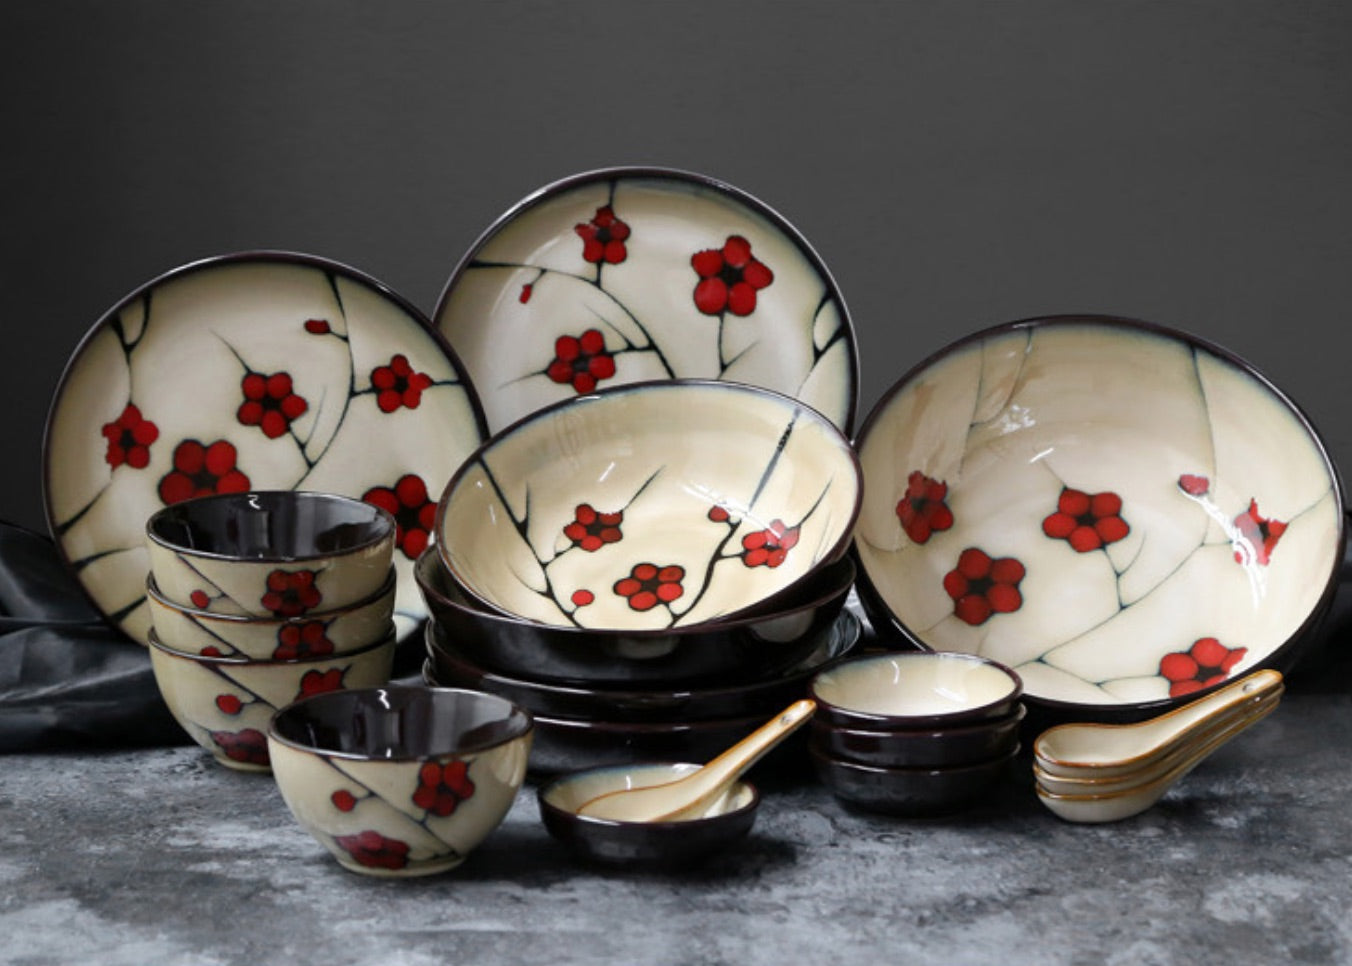 Japanese Red Plum Porcelain Bowls and Dishes Tableware Japan On-Glaze Ceramic Dinnerware Dinner Sets JPN Style L